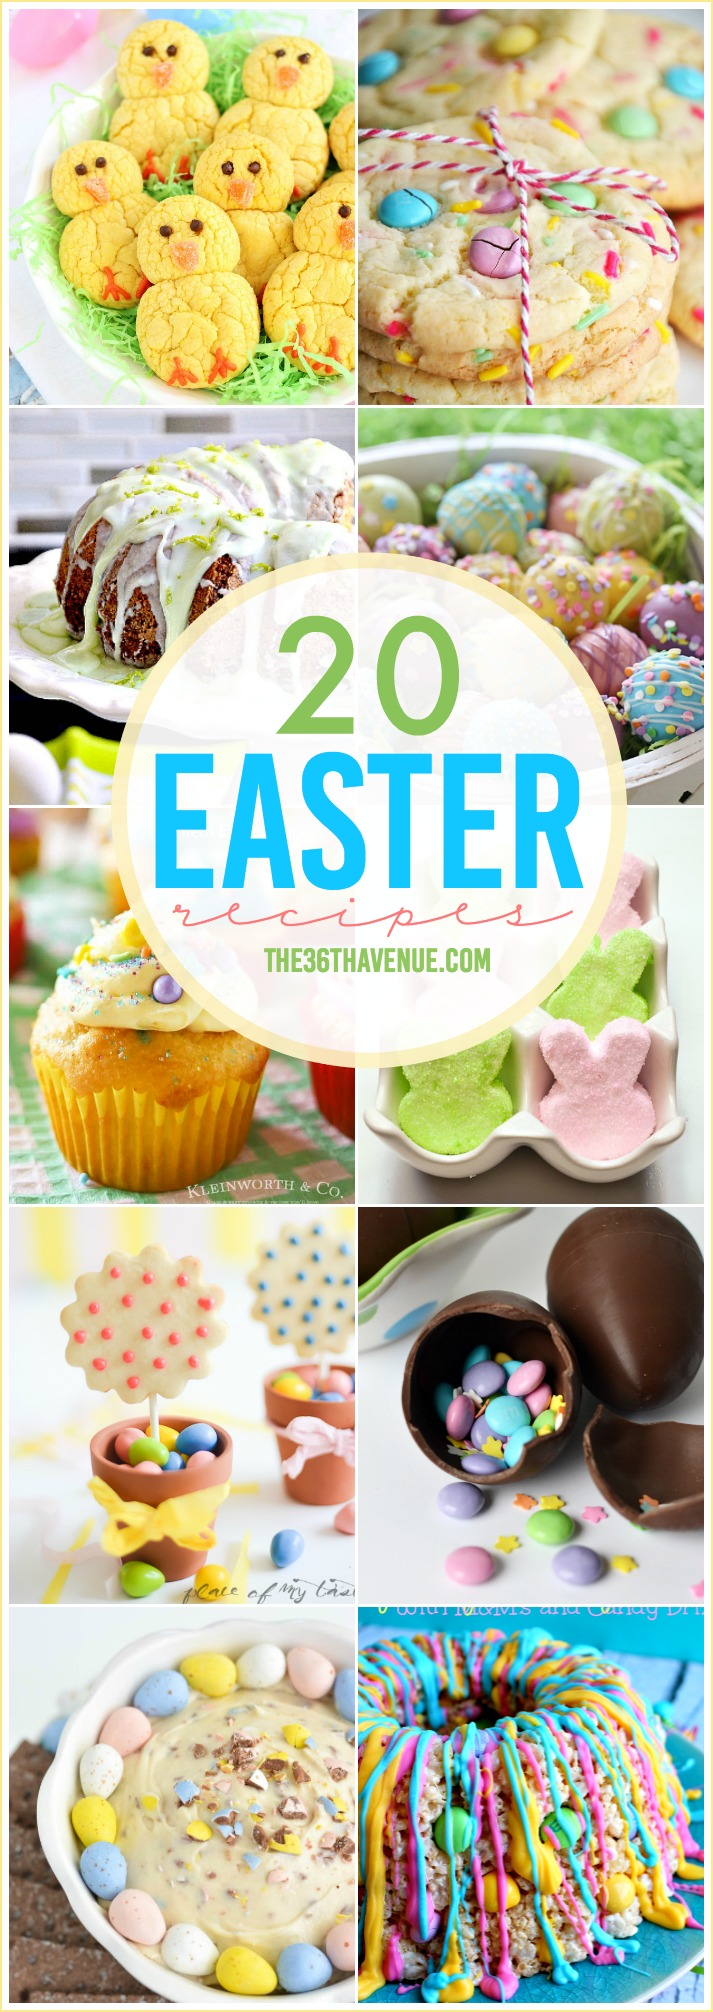 Easter Recipes the36thavenue.com